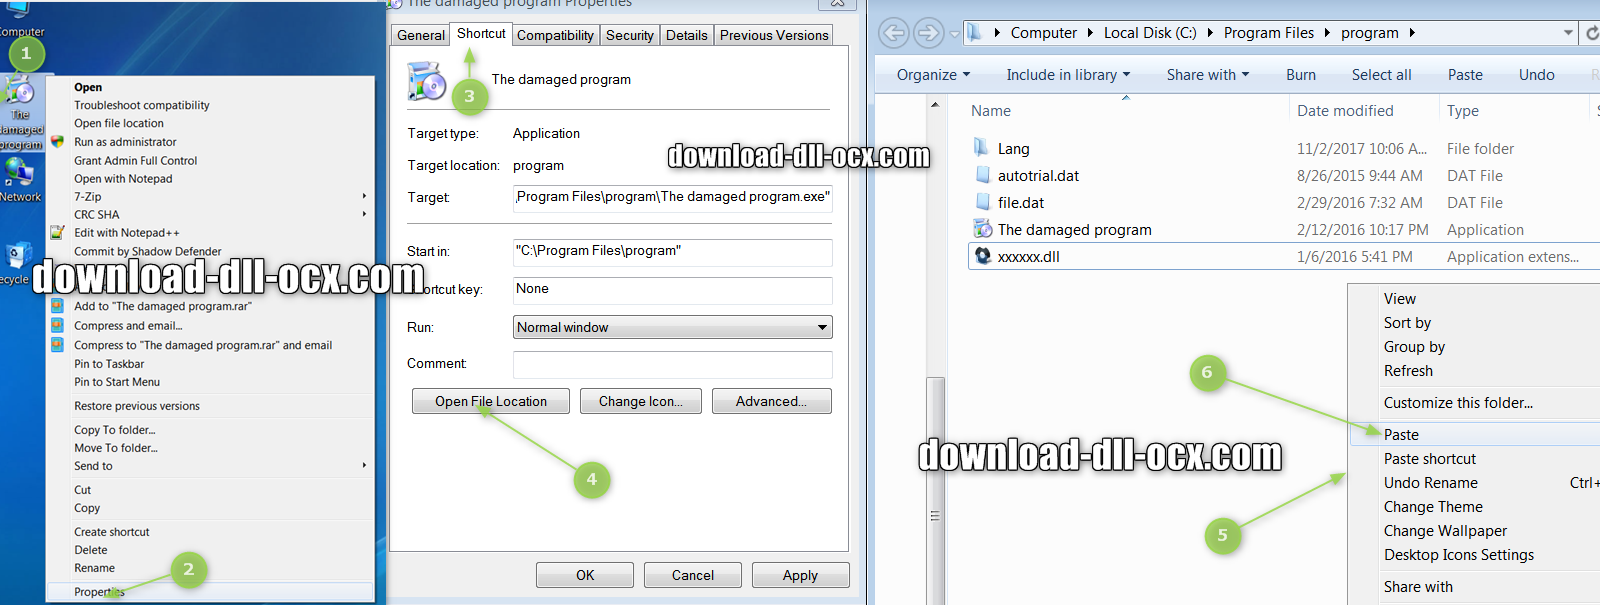 how to install IEncrypt.dll file? for fix missing